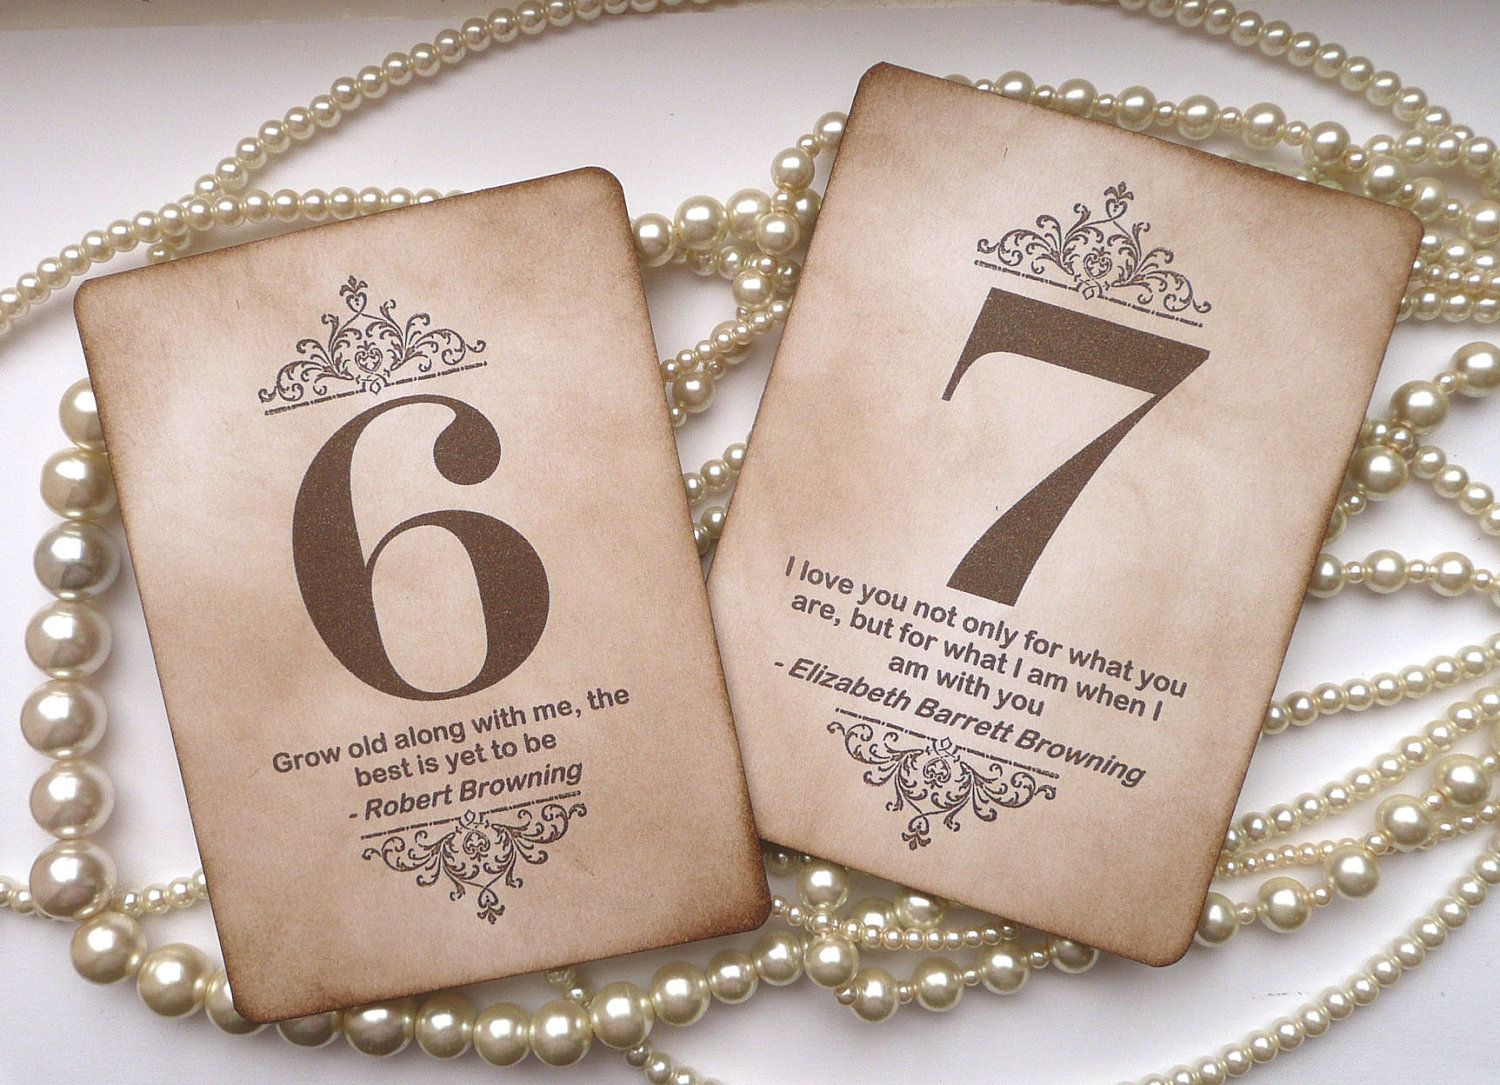 Wedding Table Numbers - Vintage Charm with QUOTES - All Handmade ...